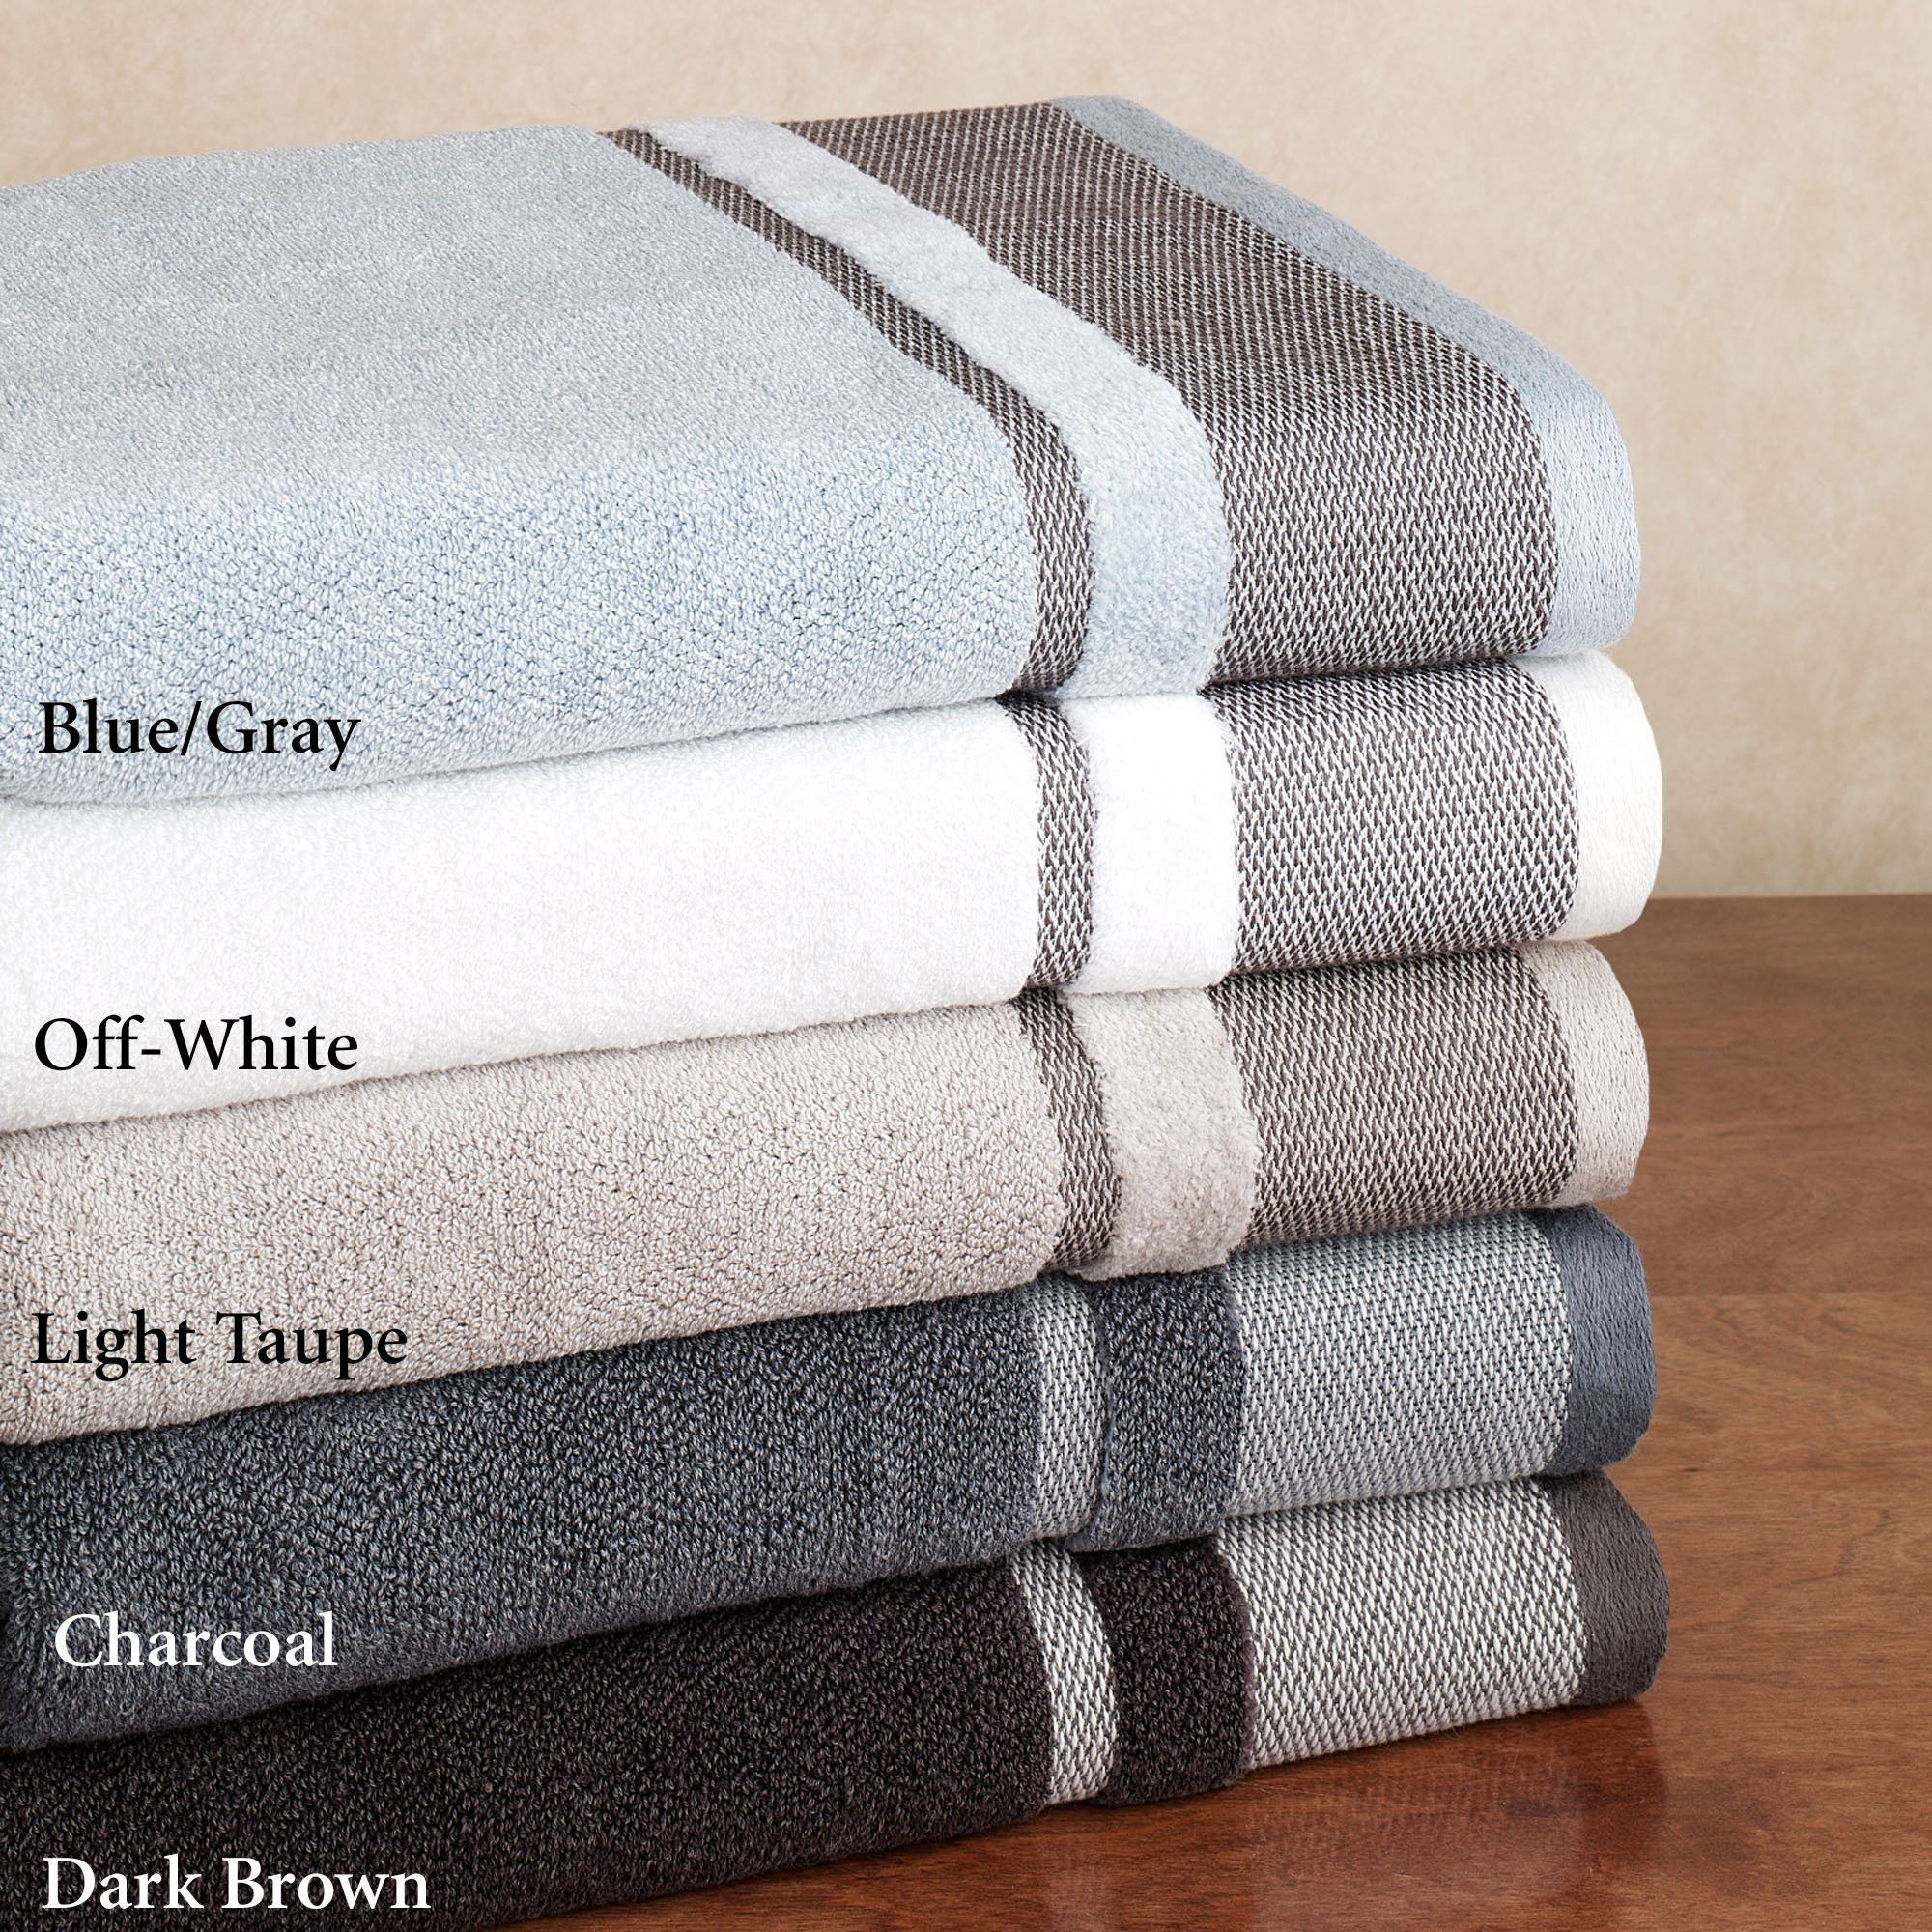 600 Gsm Mercer Cotton Bath Towels